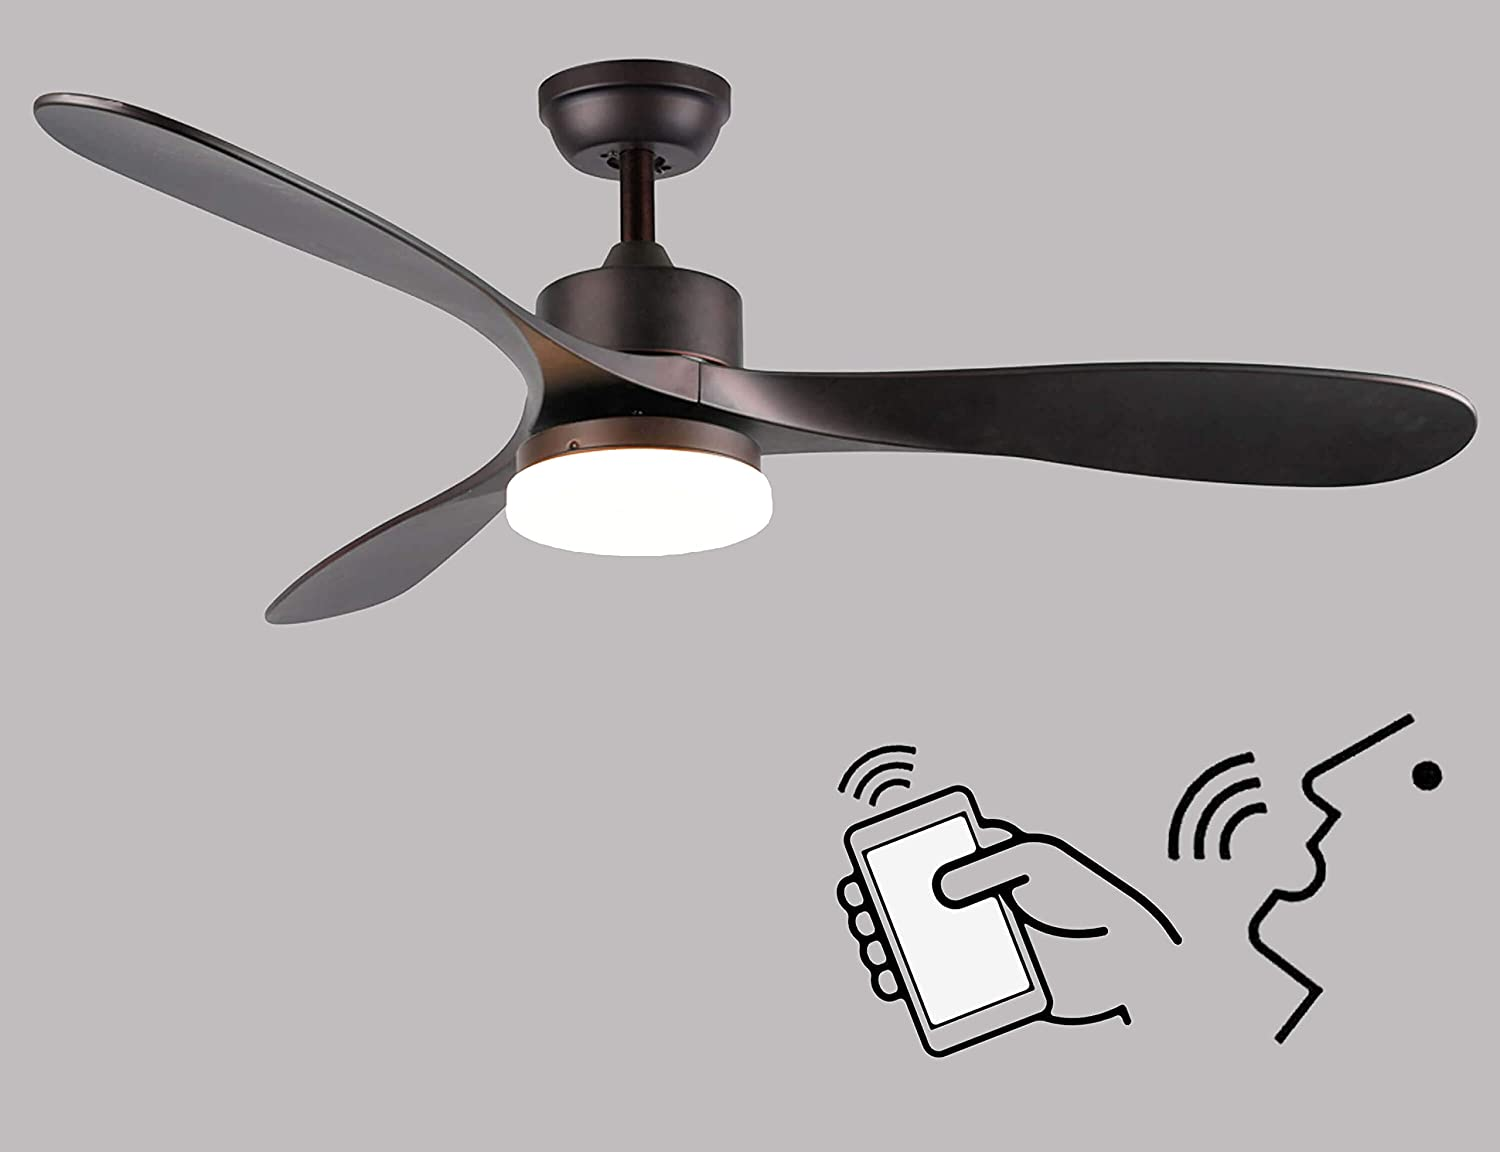 52 Inch Smart Alexa Ceiling Fan with Light Work with Alexa and Google Assistant for Living Room and Bedroom, Dark Brown Finish with LED Daylight and Acrylic Lampshade.